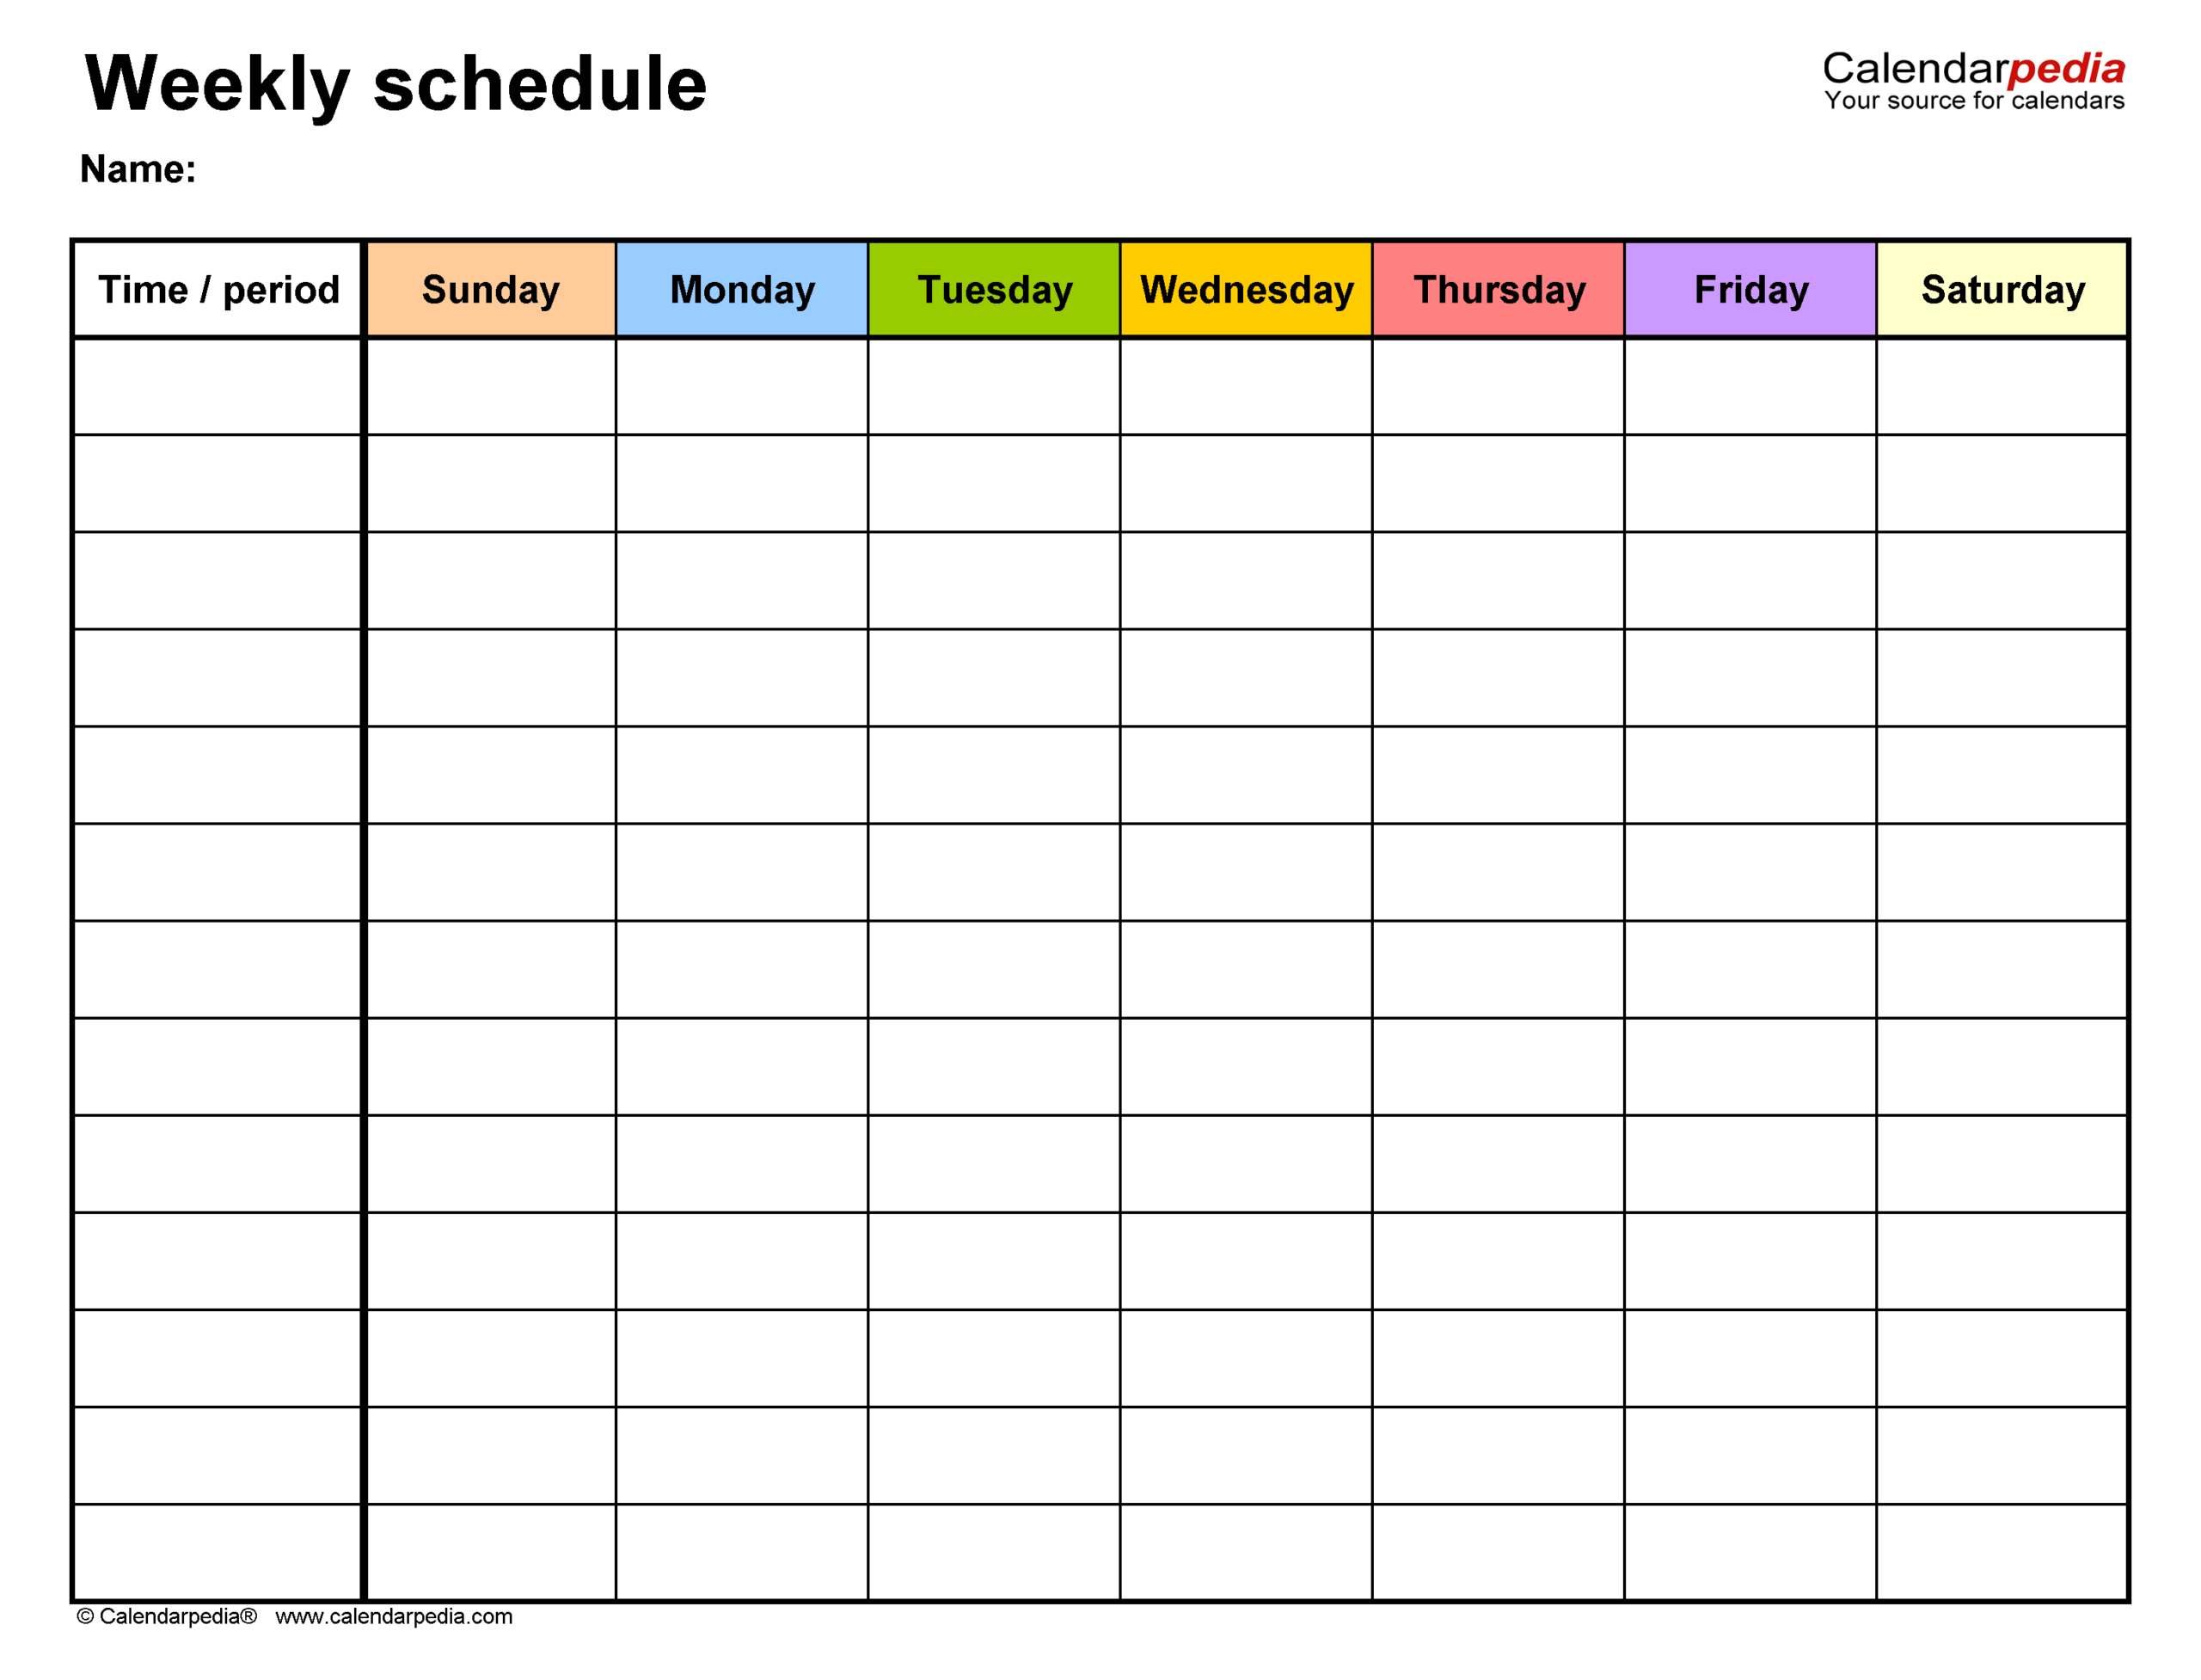 Free Weekly Schedule Templates For Word  18 Templates within Monday Through Saturday Calendar